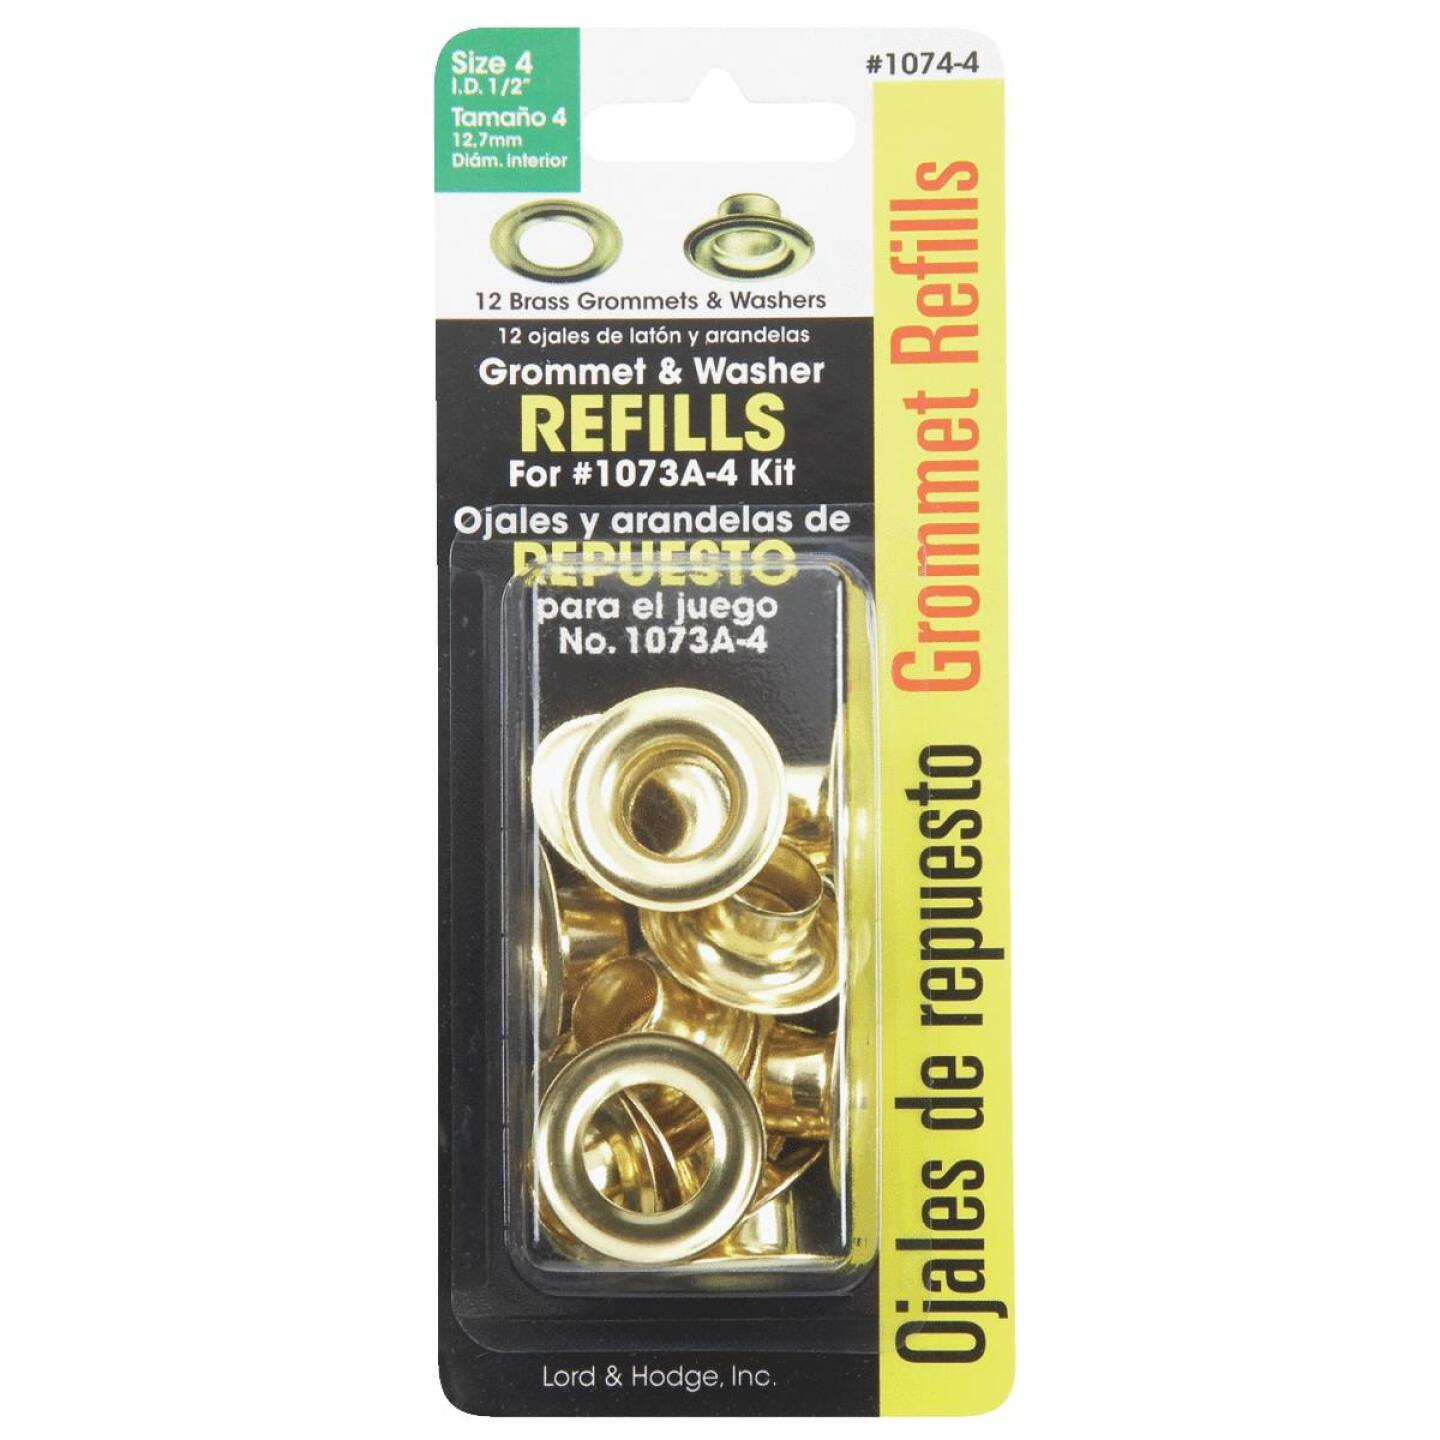 Lord & Hodge 1/2 In. Brass Grommet Refills (12 Ct.) Image 2